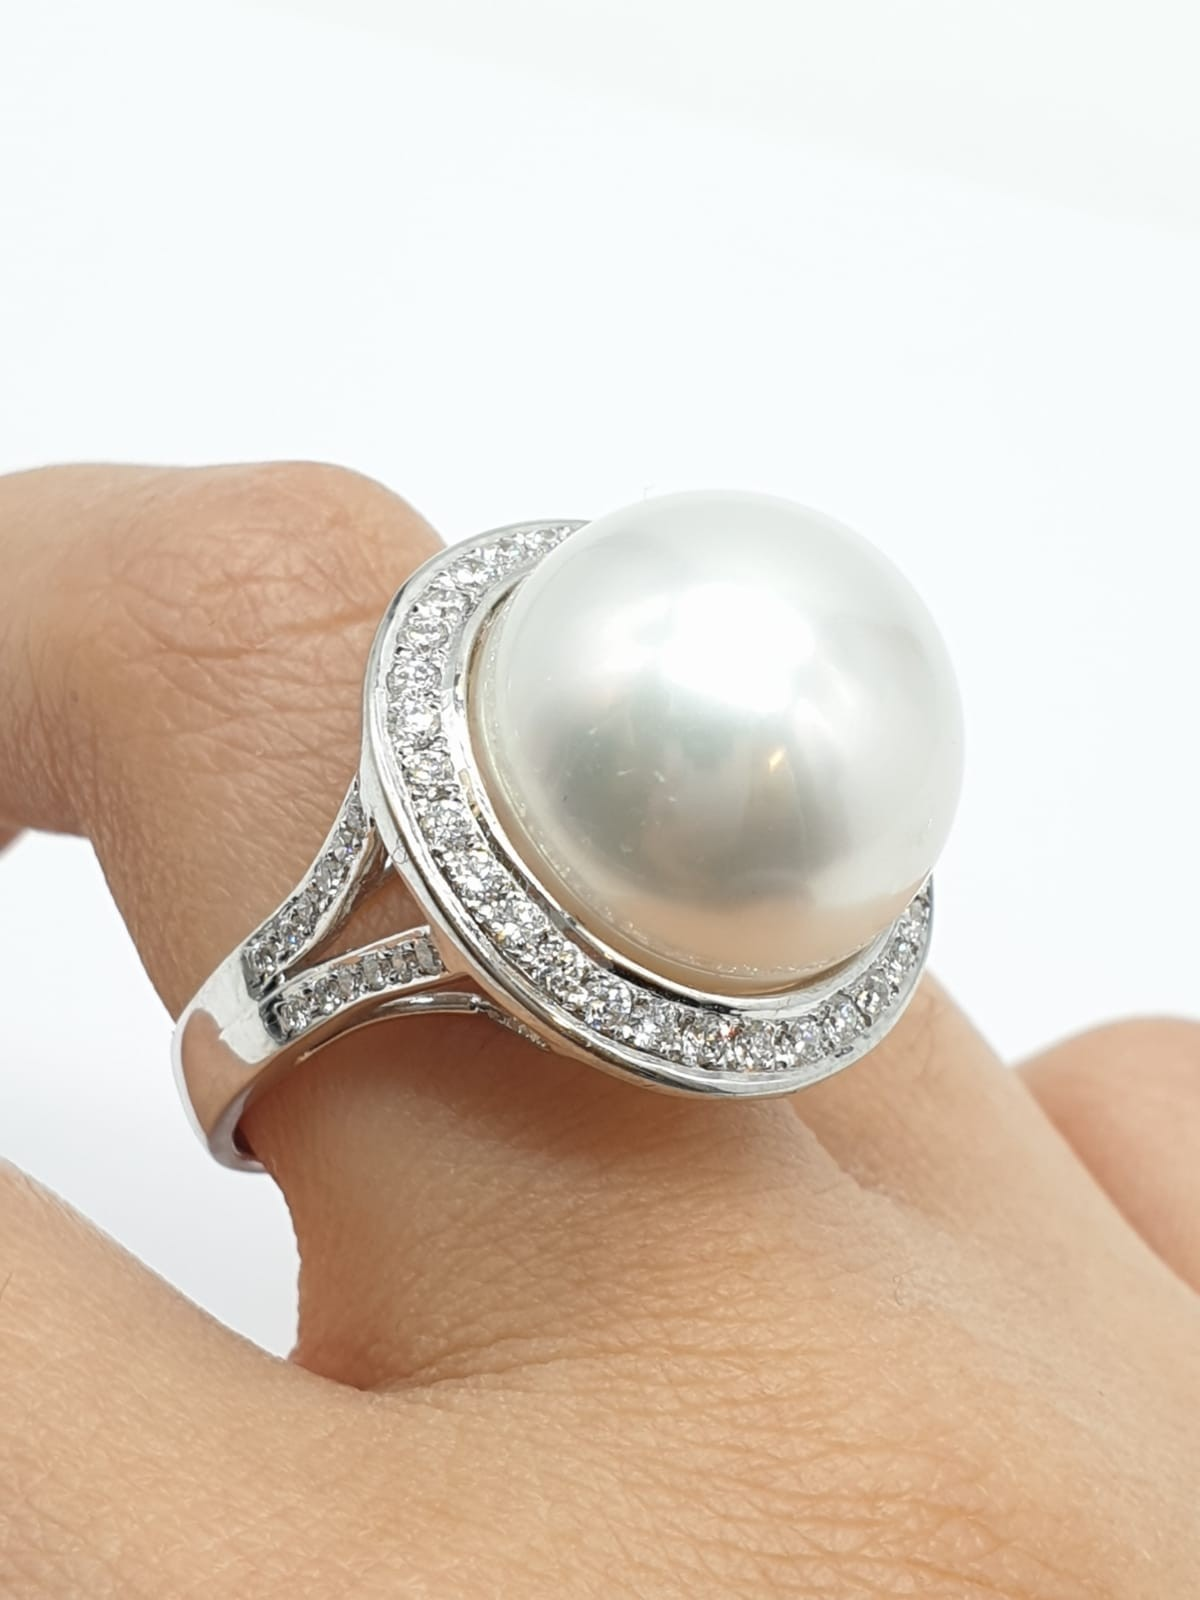 A large Kimoto pearl (17mm diameter) ring set in diamond and 18ct white gold ring, weight 14.43g and - Image 7 of 7